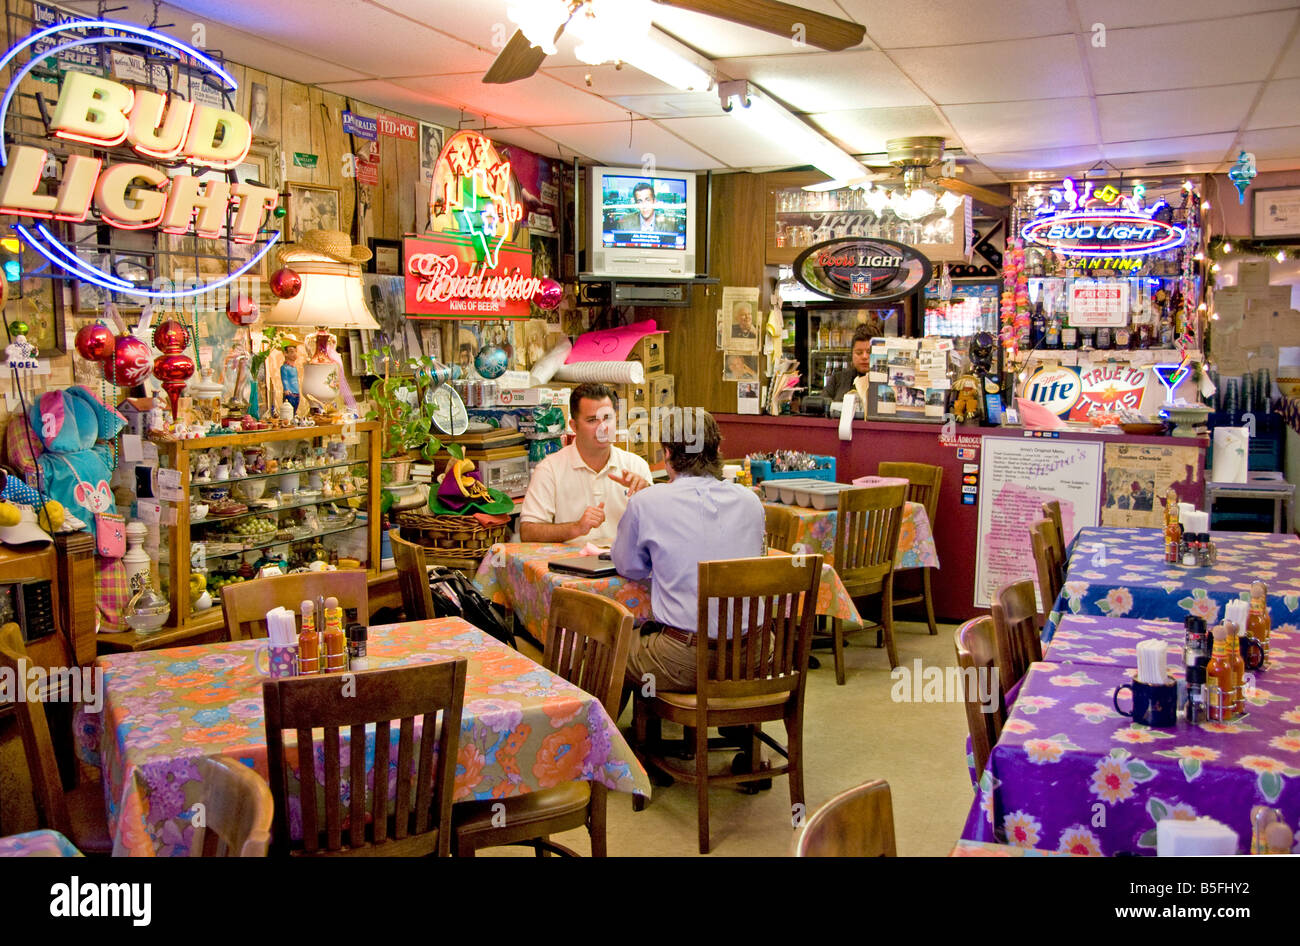 Irma S Restaurant A Houston Institution For Mexican Food